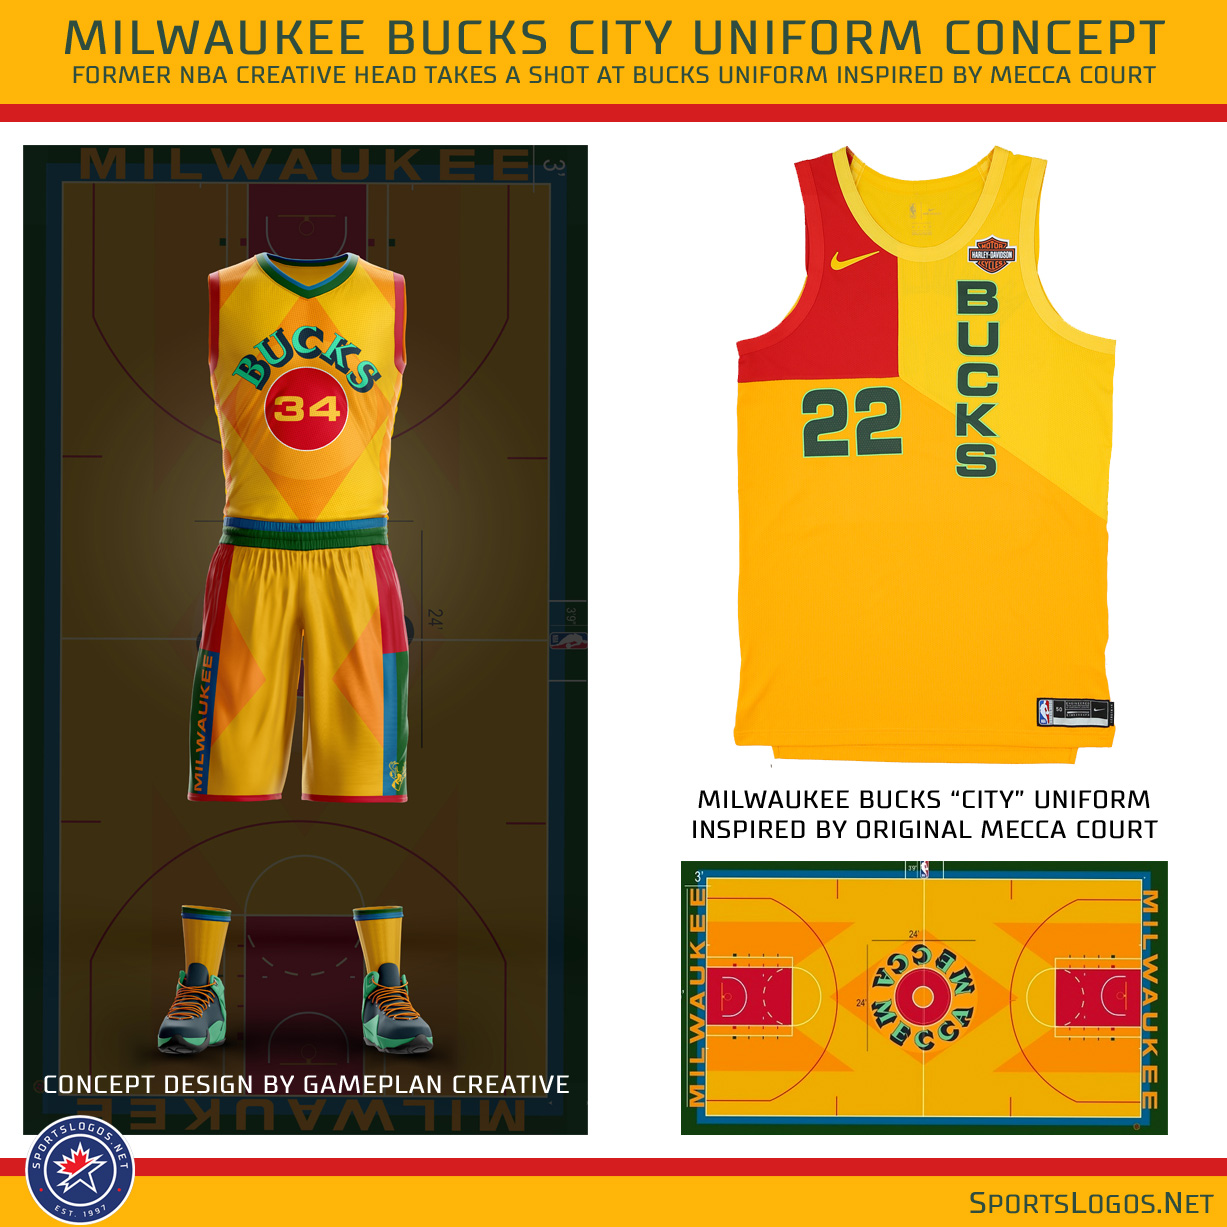 online store 2a3cc 76781 Studio Stories: Discussing, Re-Imagining City Unis with NBA ...